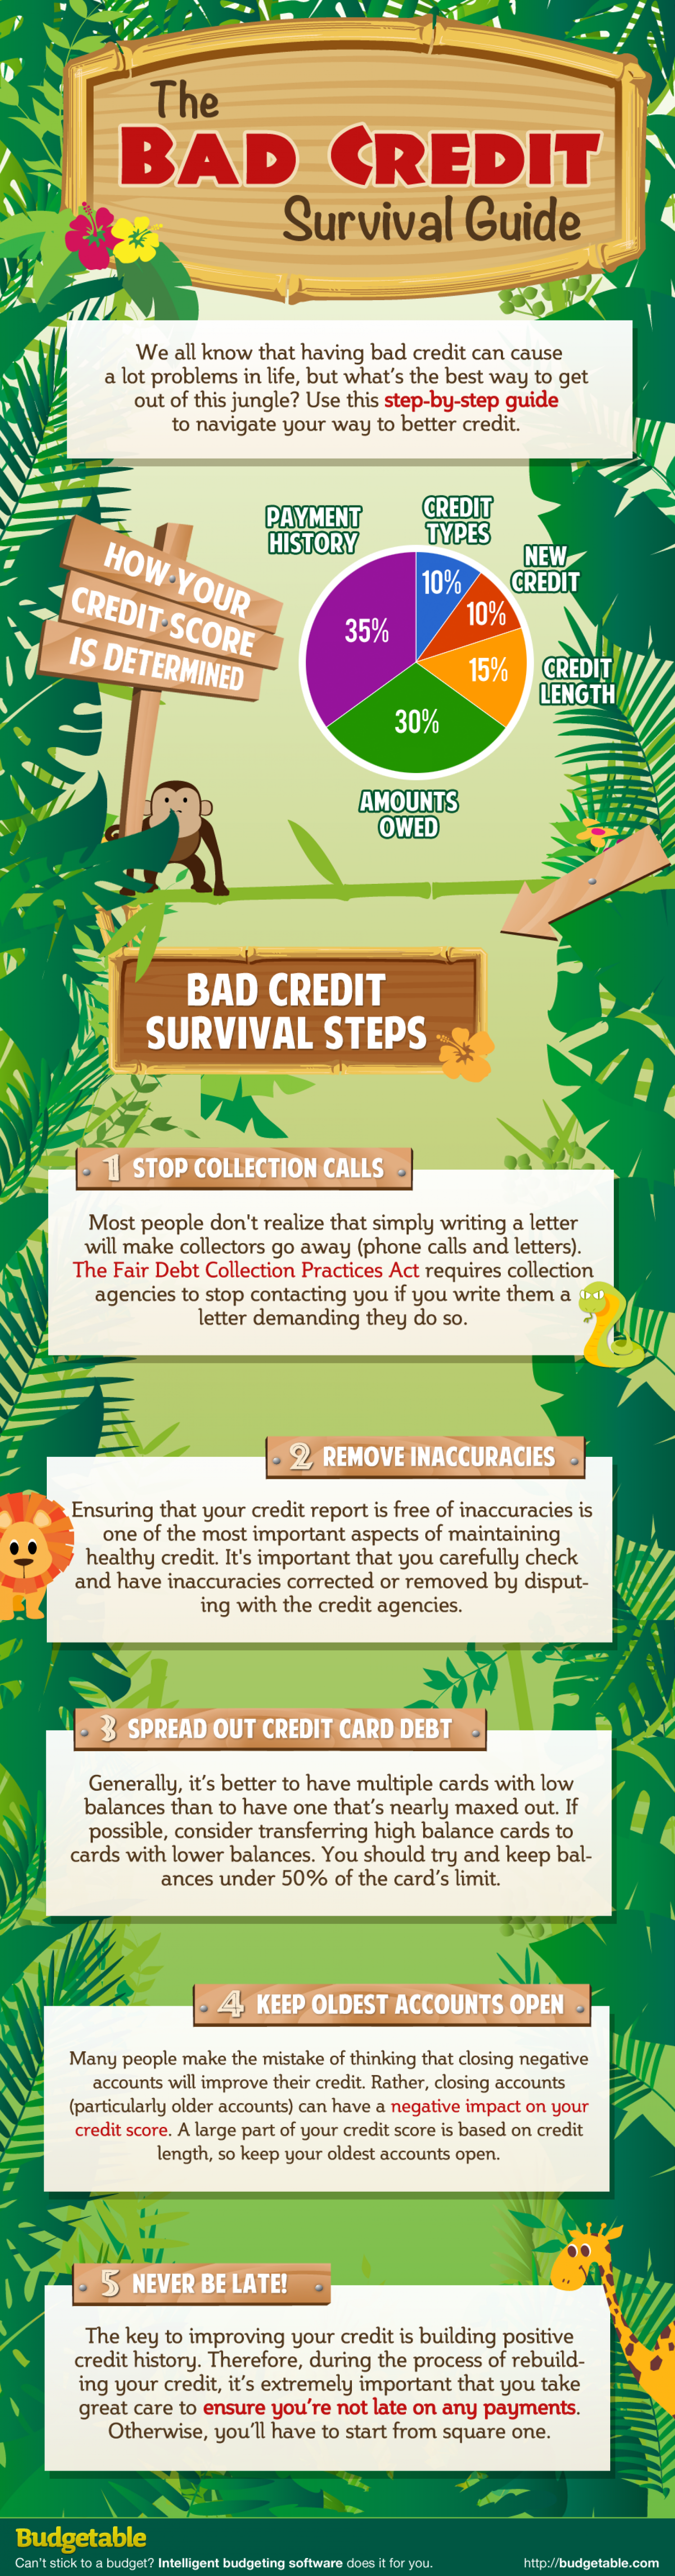 The Bad Credit Survival Guide Infographic